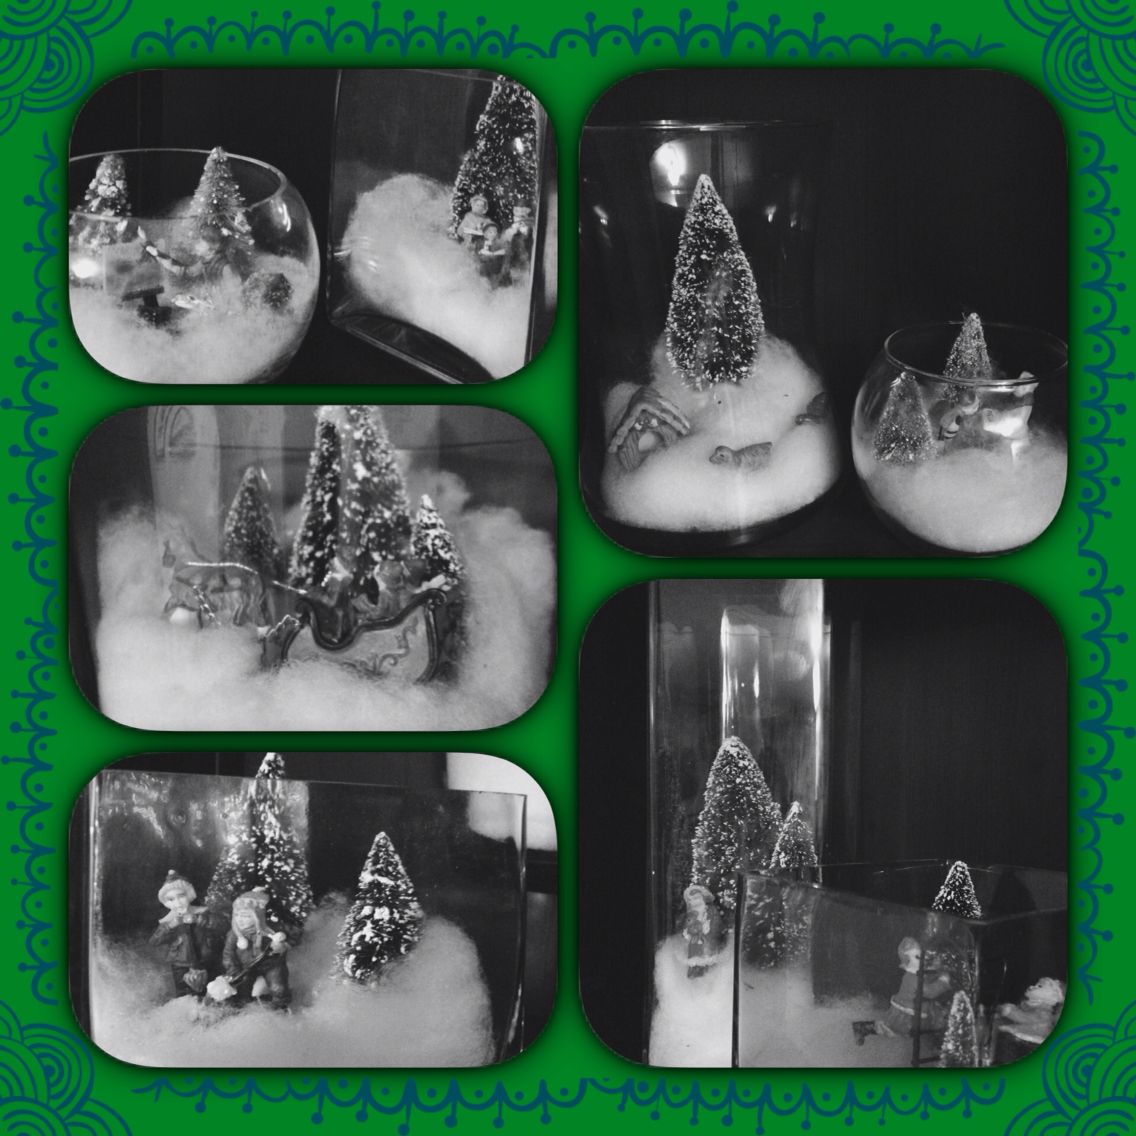 Christmas decorations use using glass vases. Christmas trees and min village people.